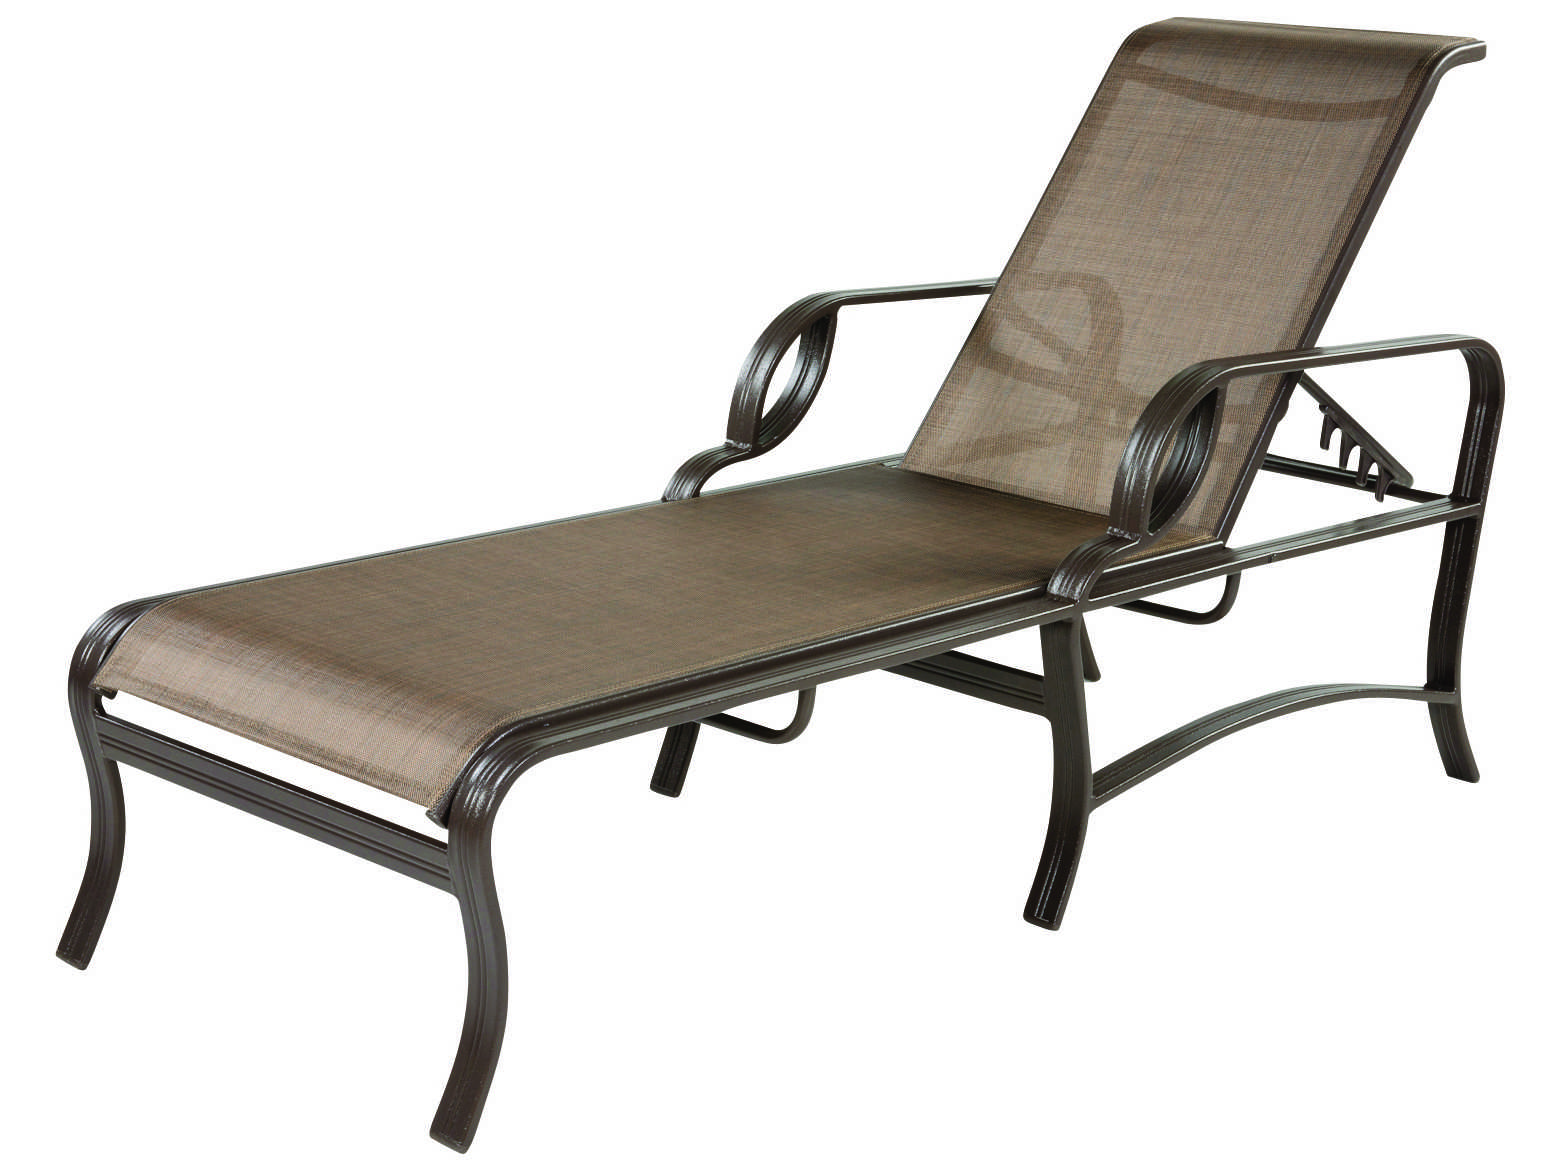 Windward design group eclipse sling cast aluminum chaise for Cast aluminum chaise lounge